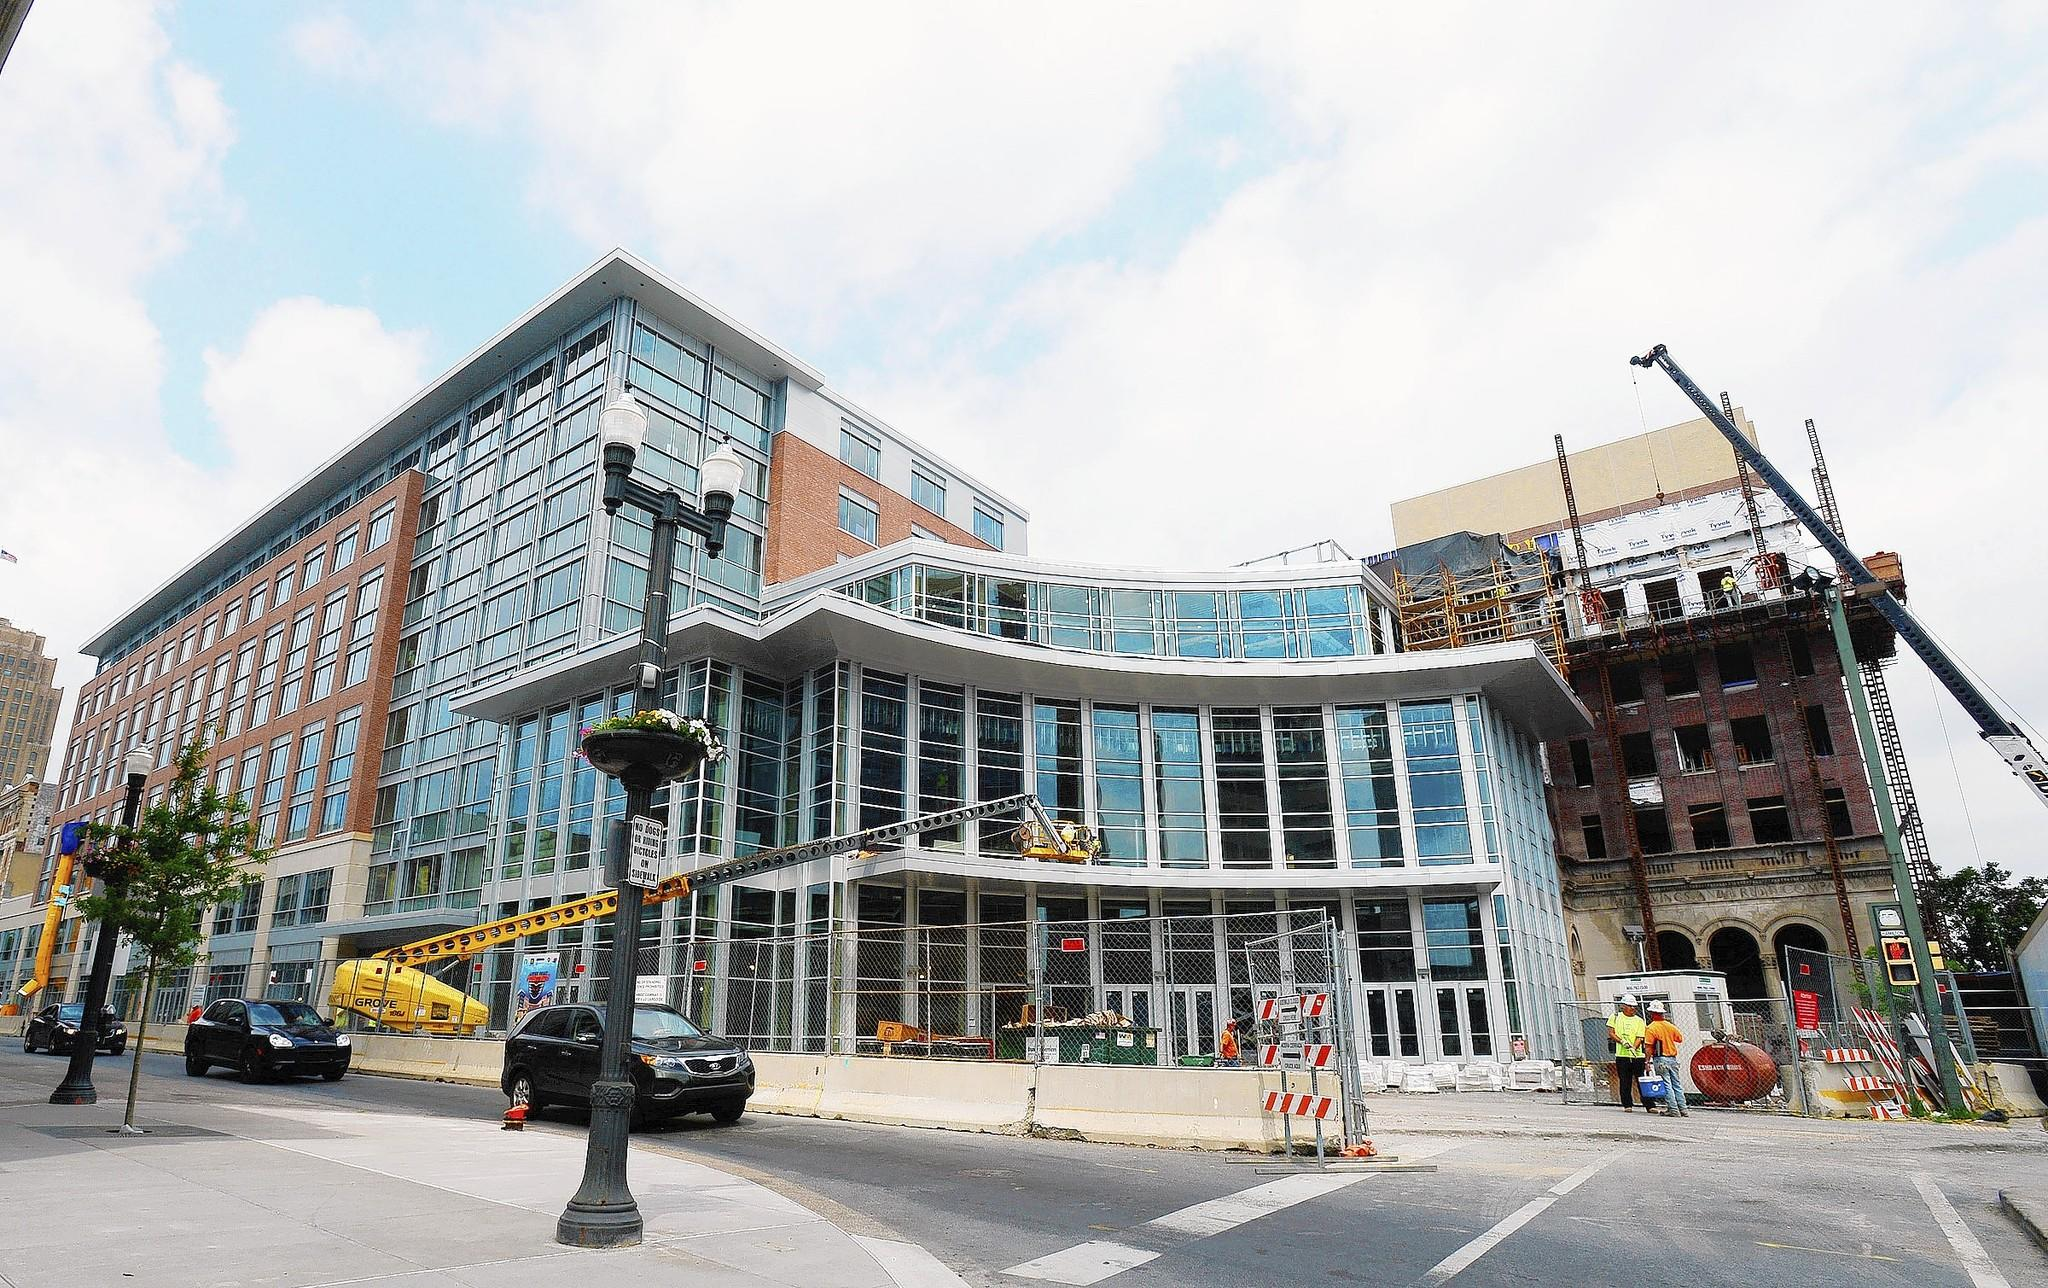 The PPL Center arena and surrounding development in Allentown have helped the city book a statwide convention for 2015.